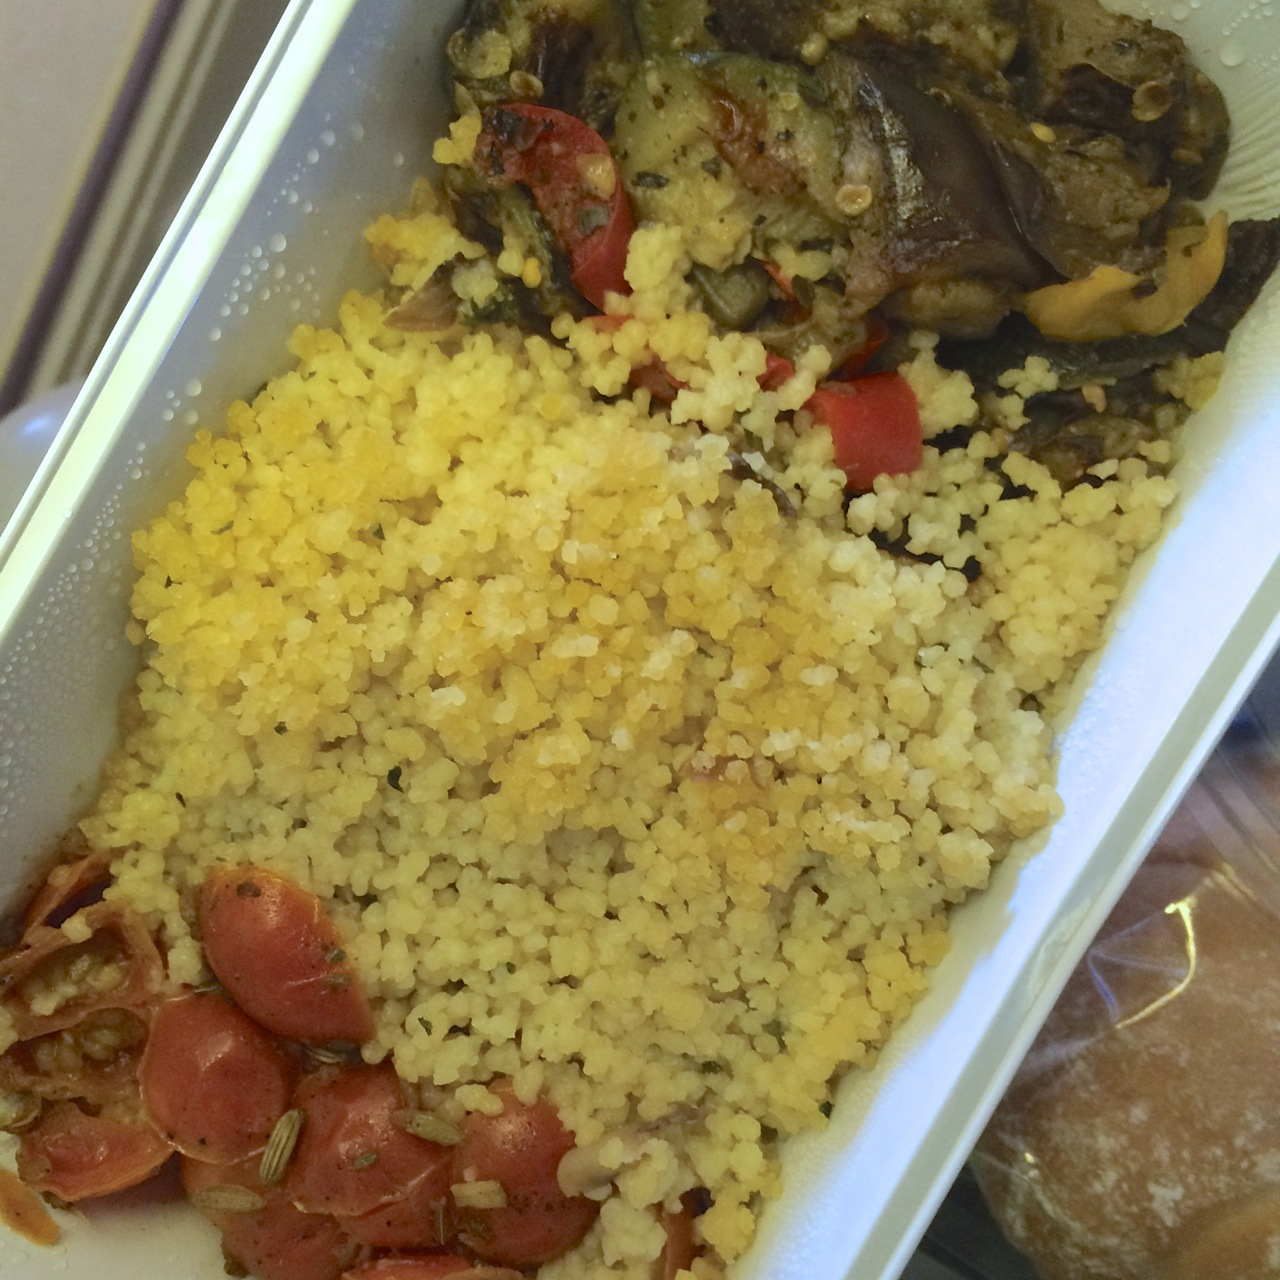 Vegan BA meal in flight